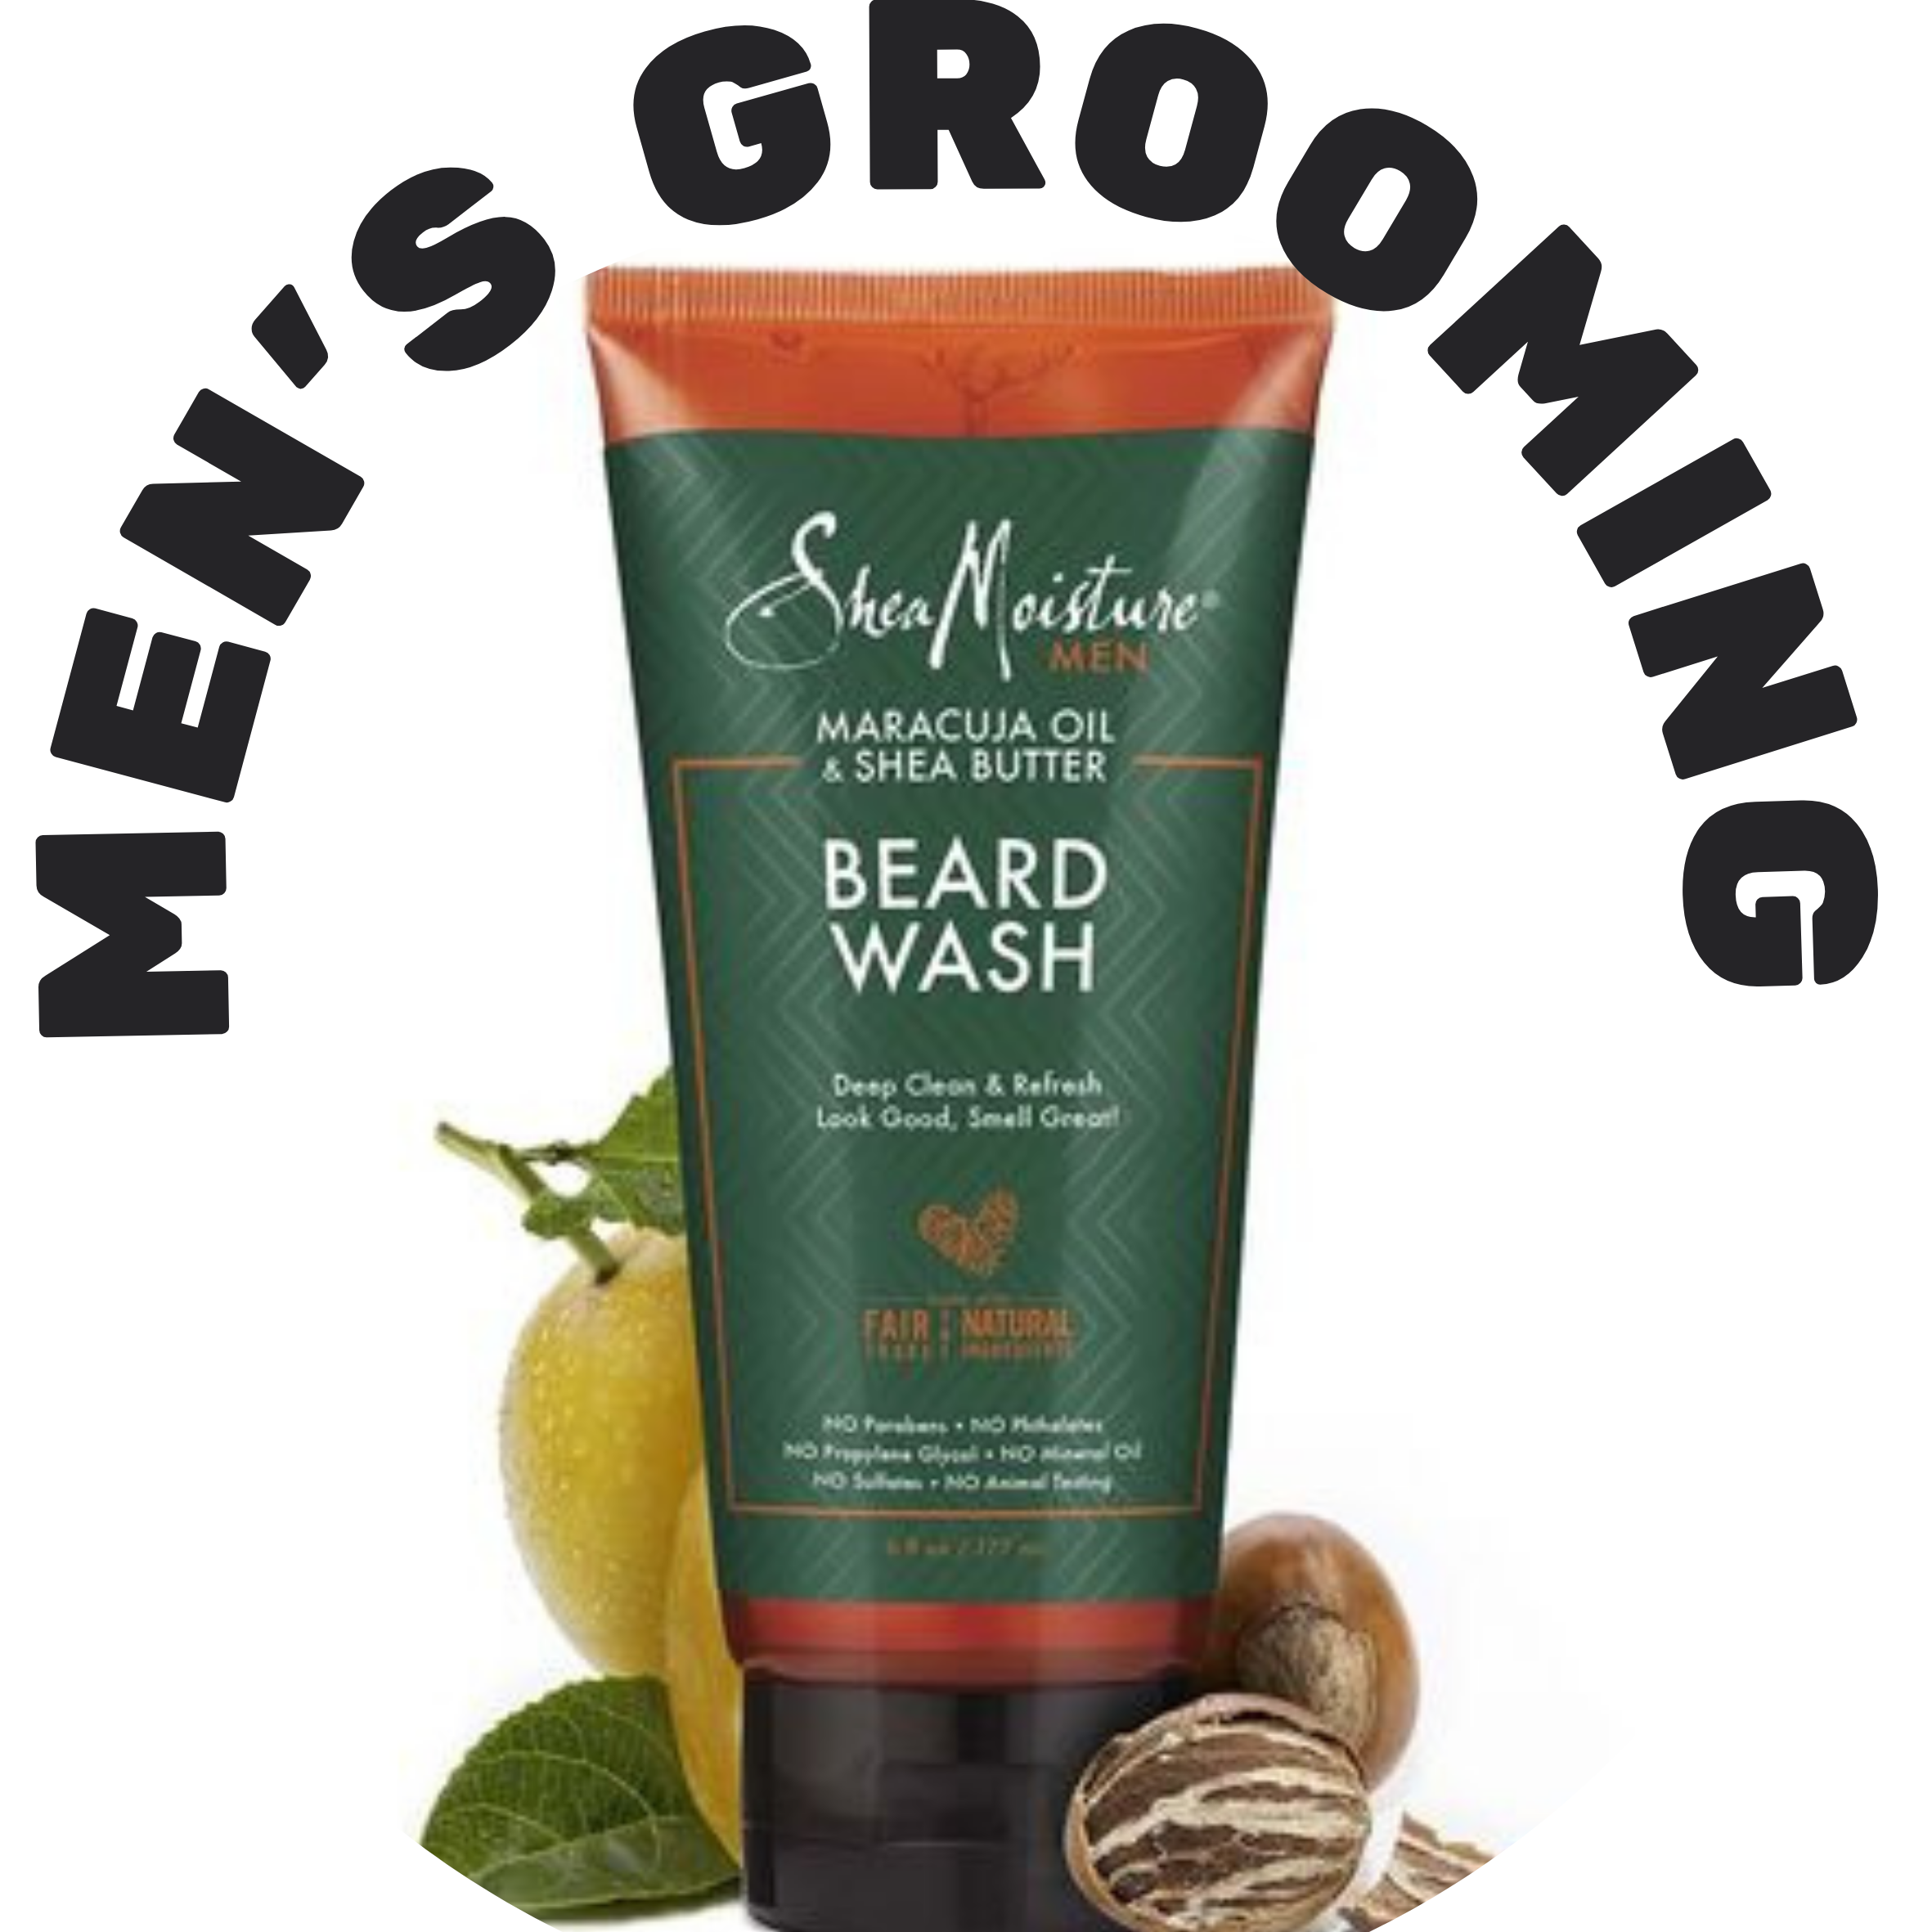 MEN'S HAIR CARE, BEARD CARE, CLIPPERS, TRIMMERS AND GROOMING